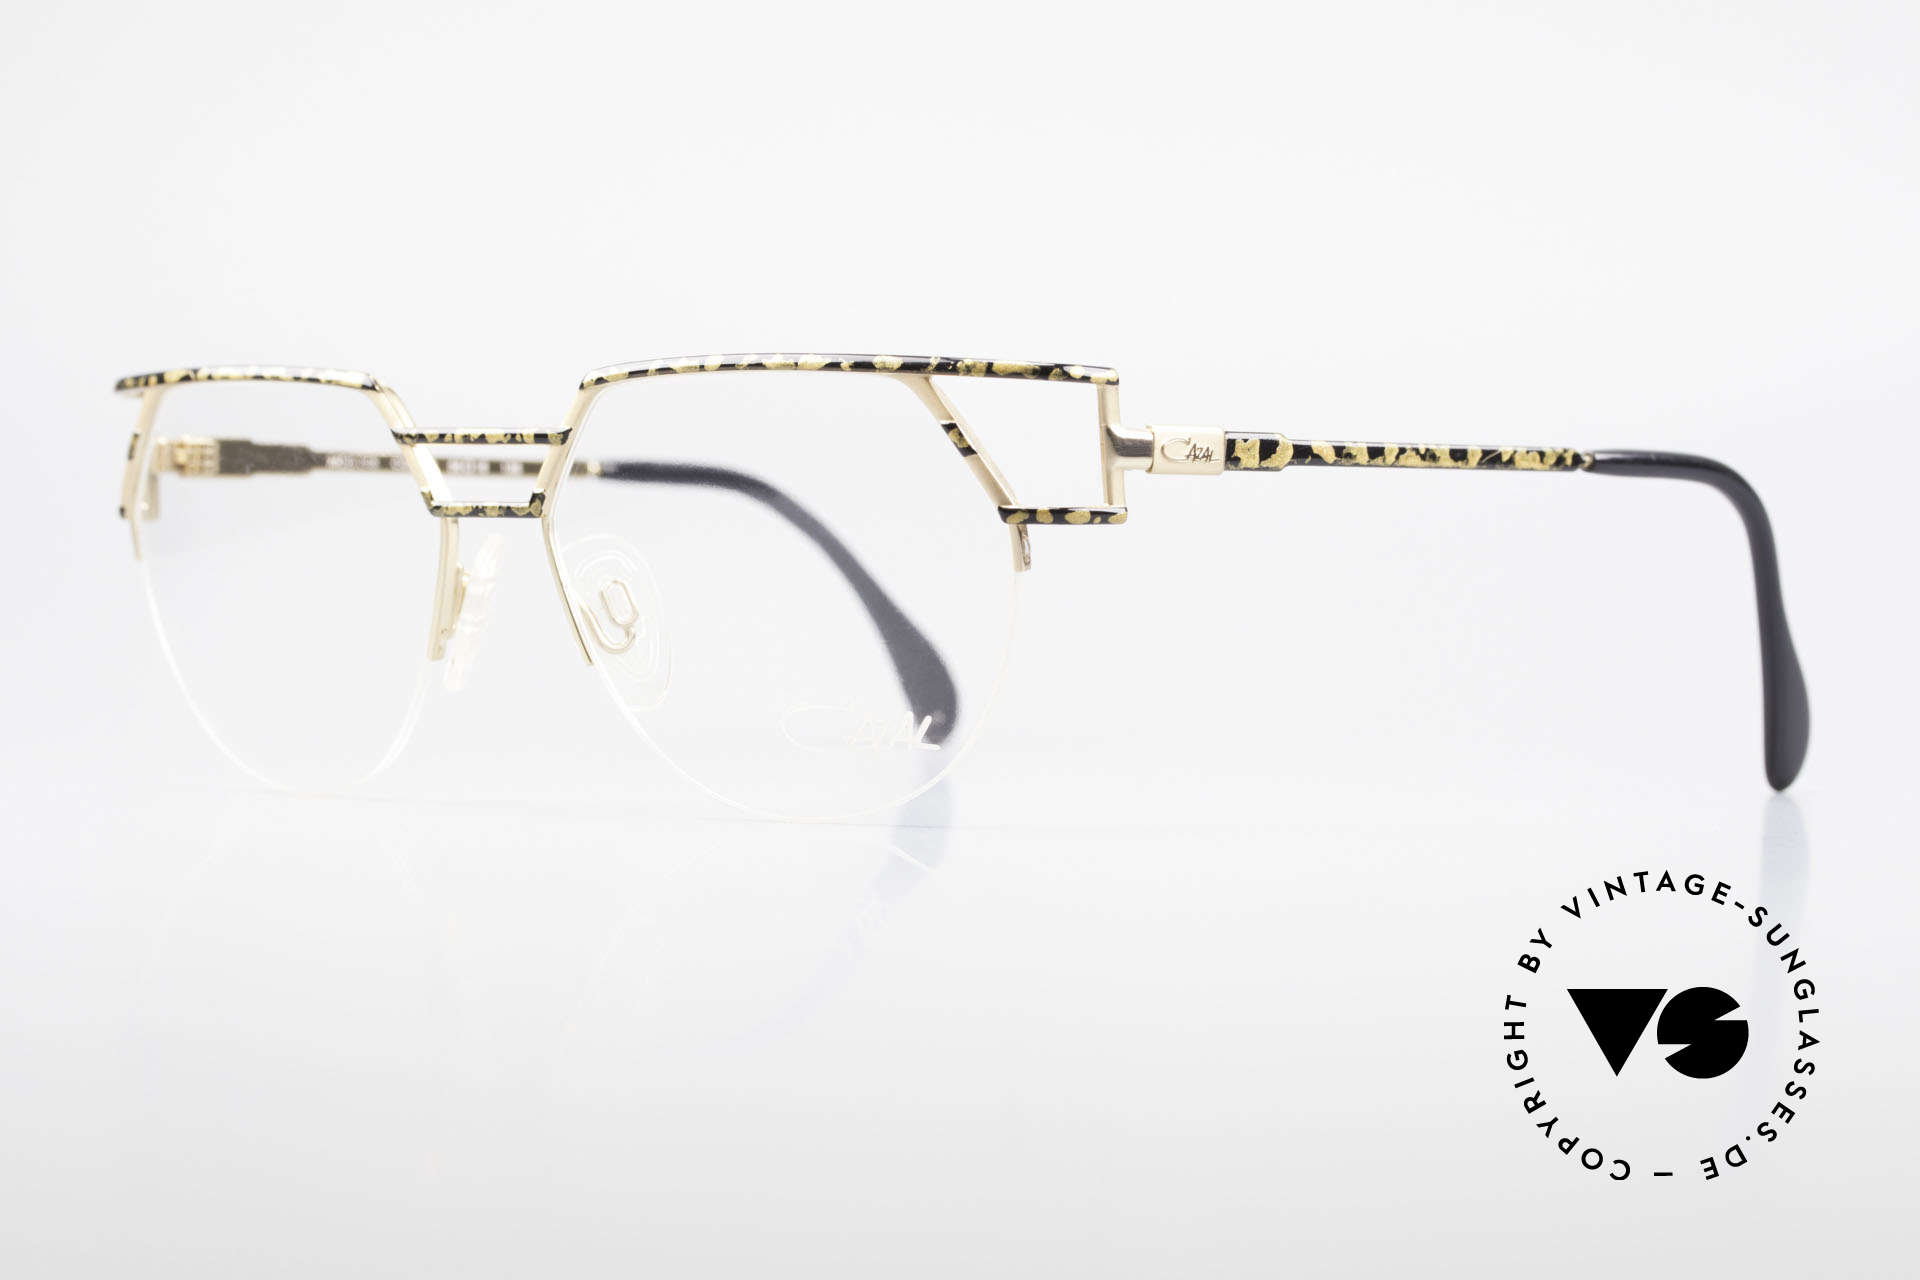 Cazal 248 Original 90's Frame No Retro, very elegant frame pattern (gold / black mottled), Made for Men and Women